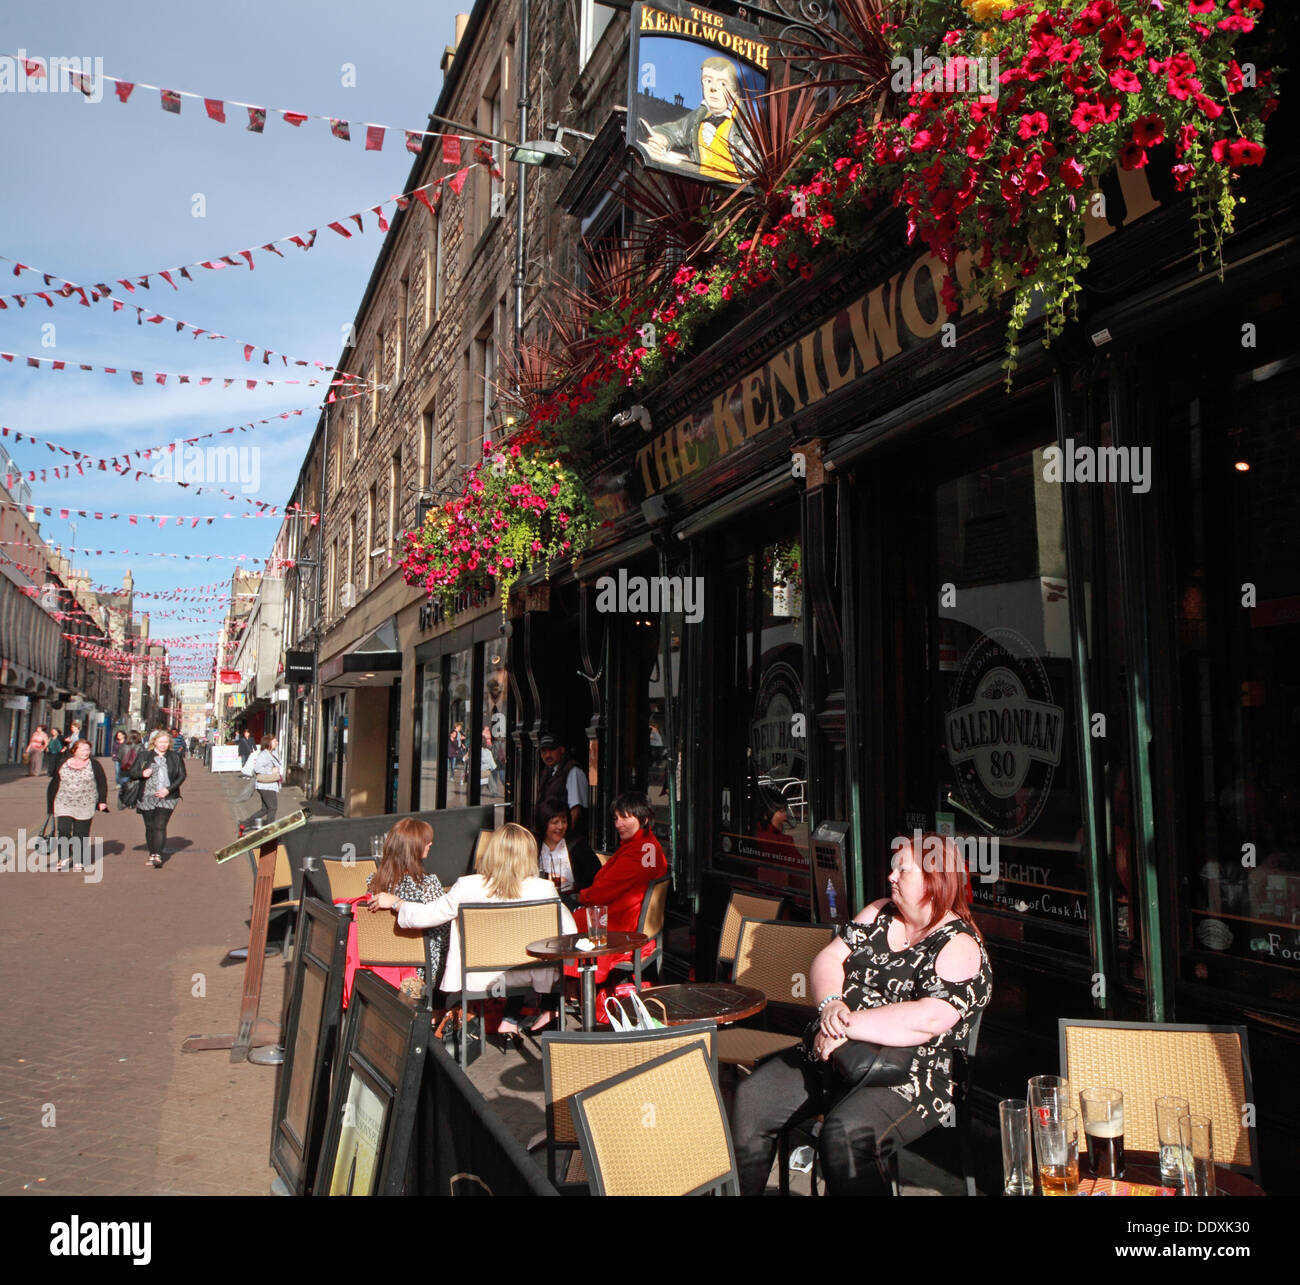 Rose Street,Edinburgh,Scotland,UK - the Kenilworth - Stock Image